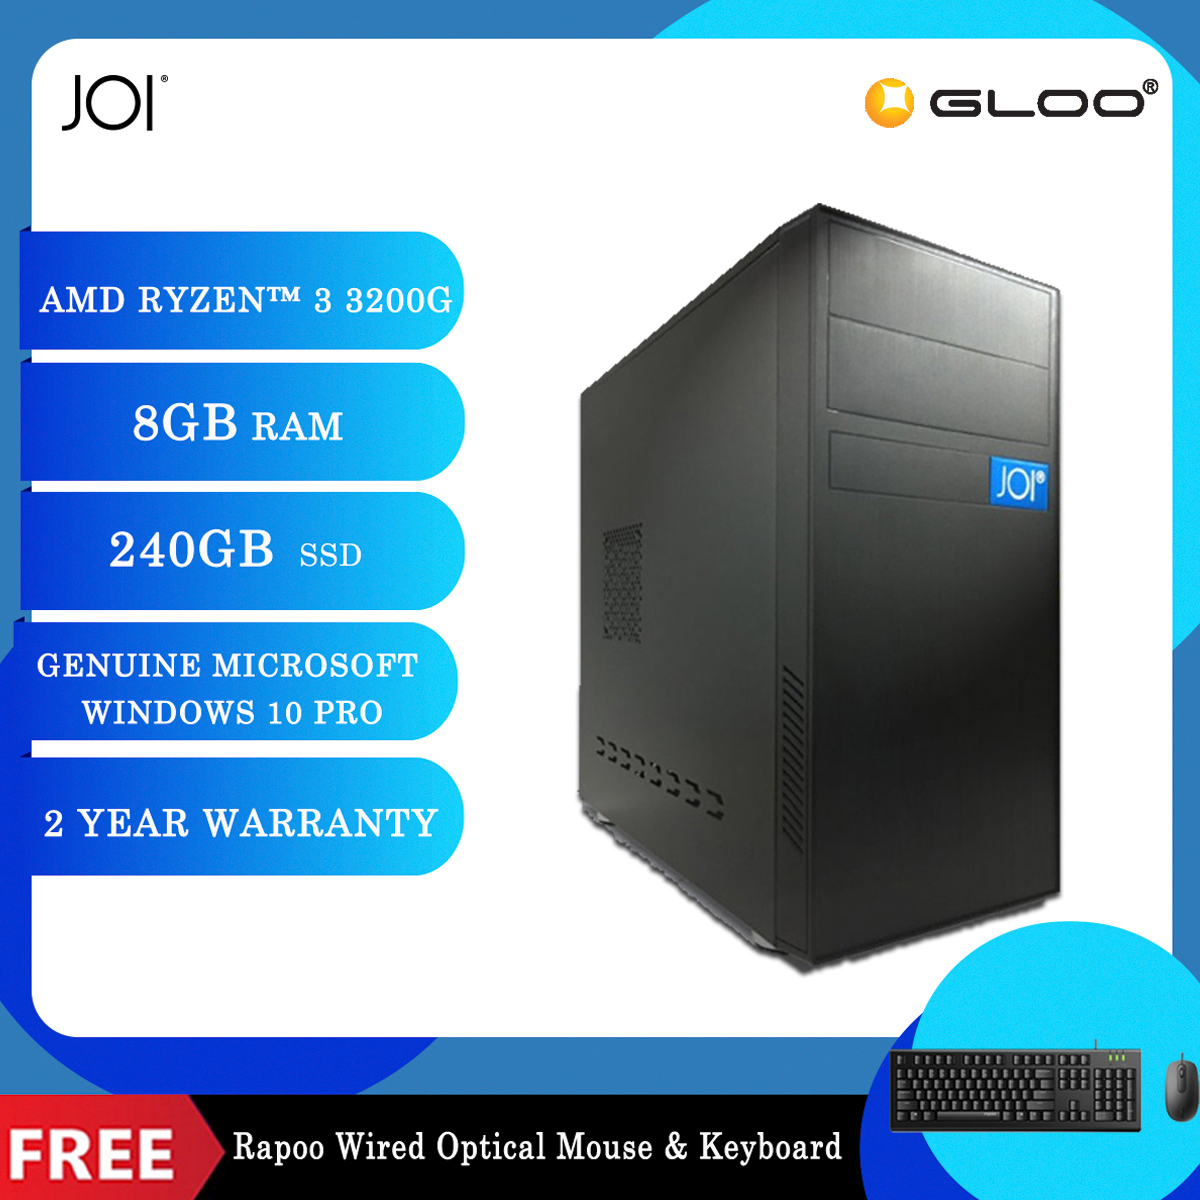 JOI PC A1032 (Ryzen 3 3200G/8G/240GB SSD/W10P) Free Combo Wired Keyboard+Mouse